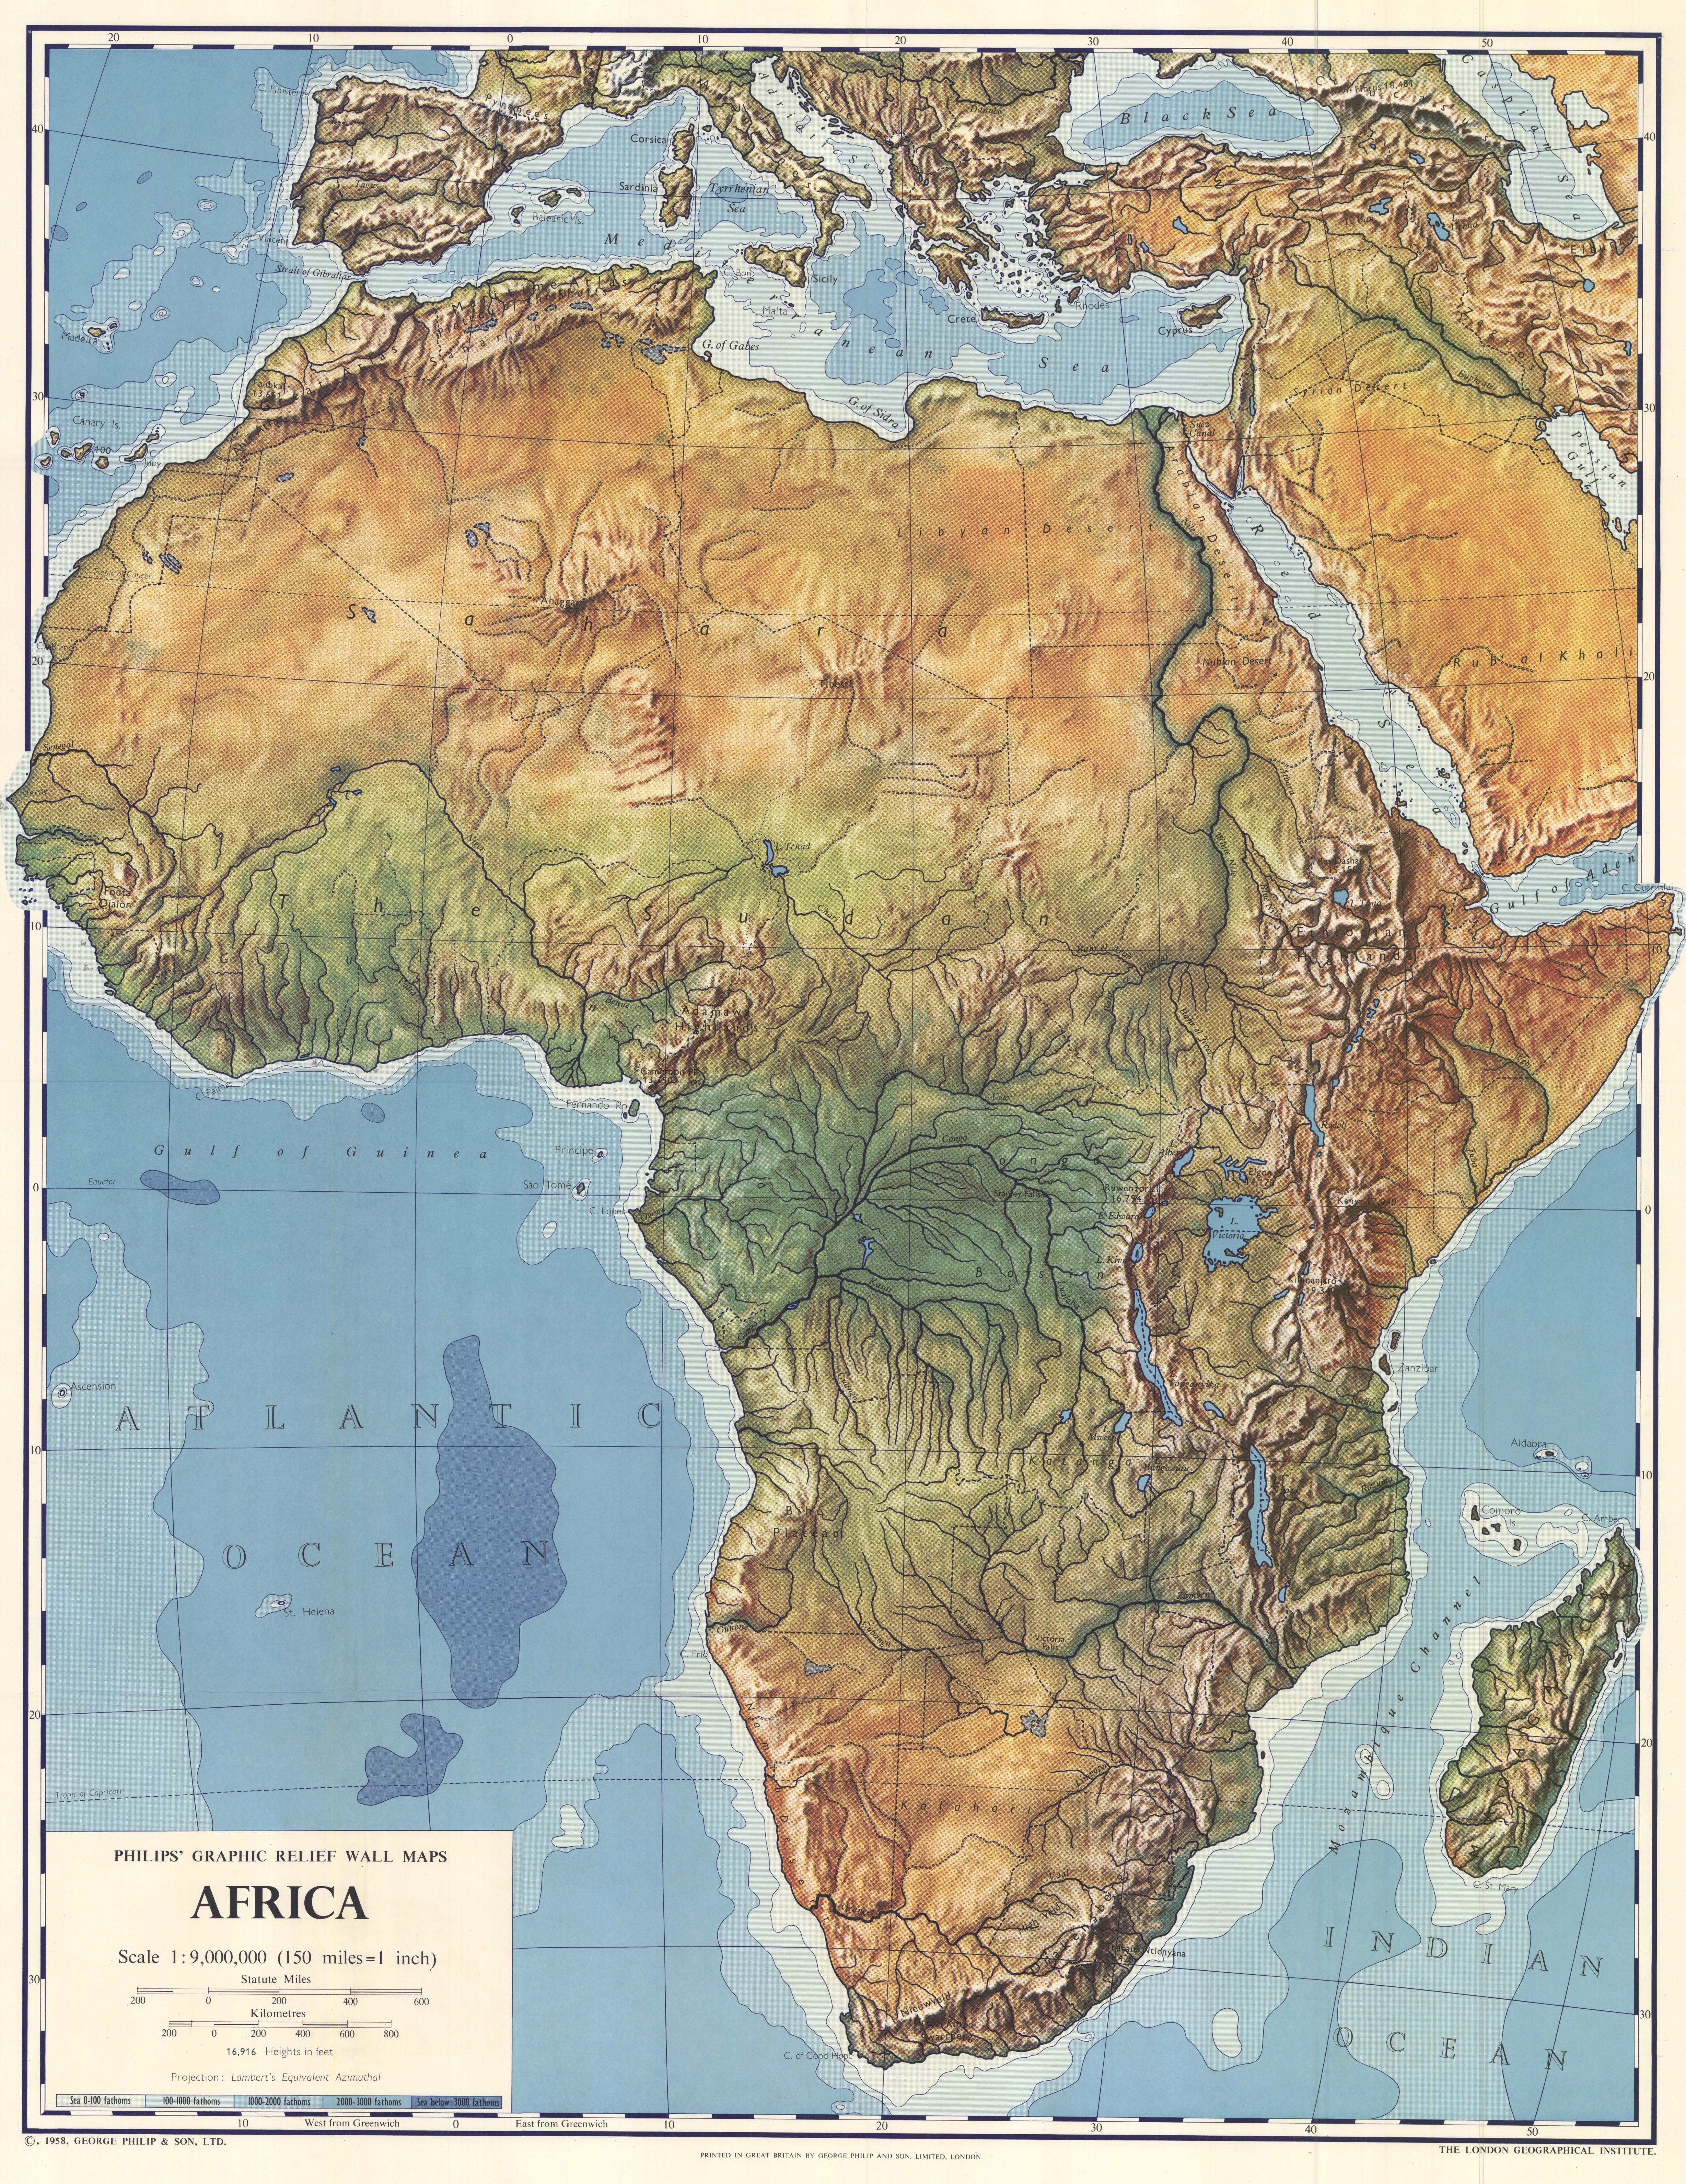 Map Of Africa Physical.12 Awesome Physical Map Of Africa With Landforms Images Maps In